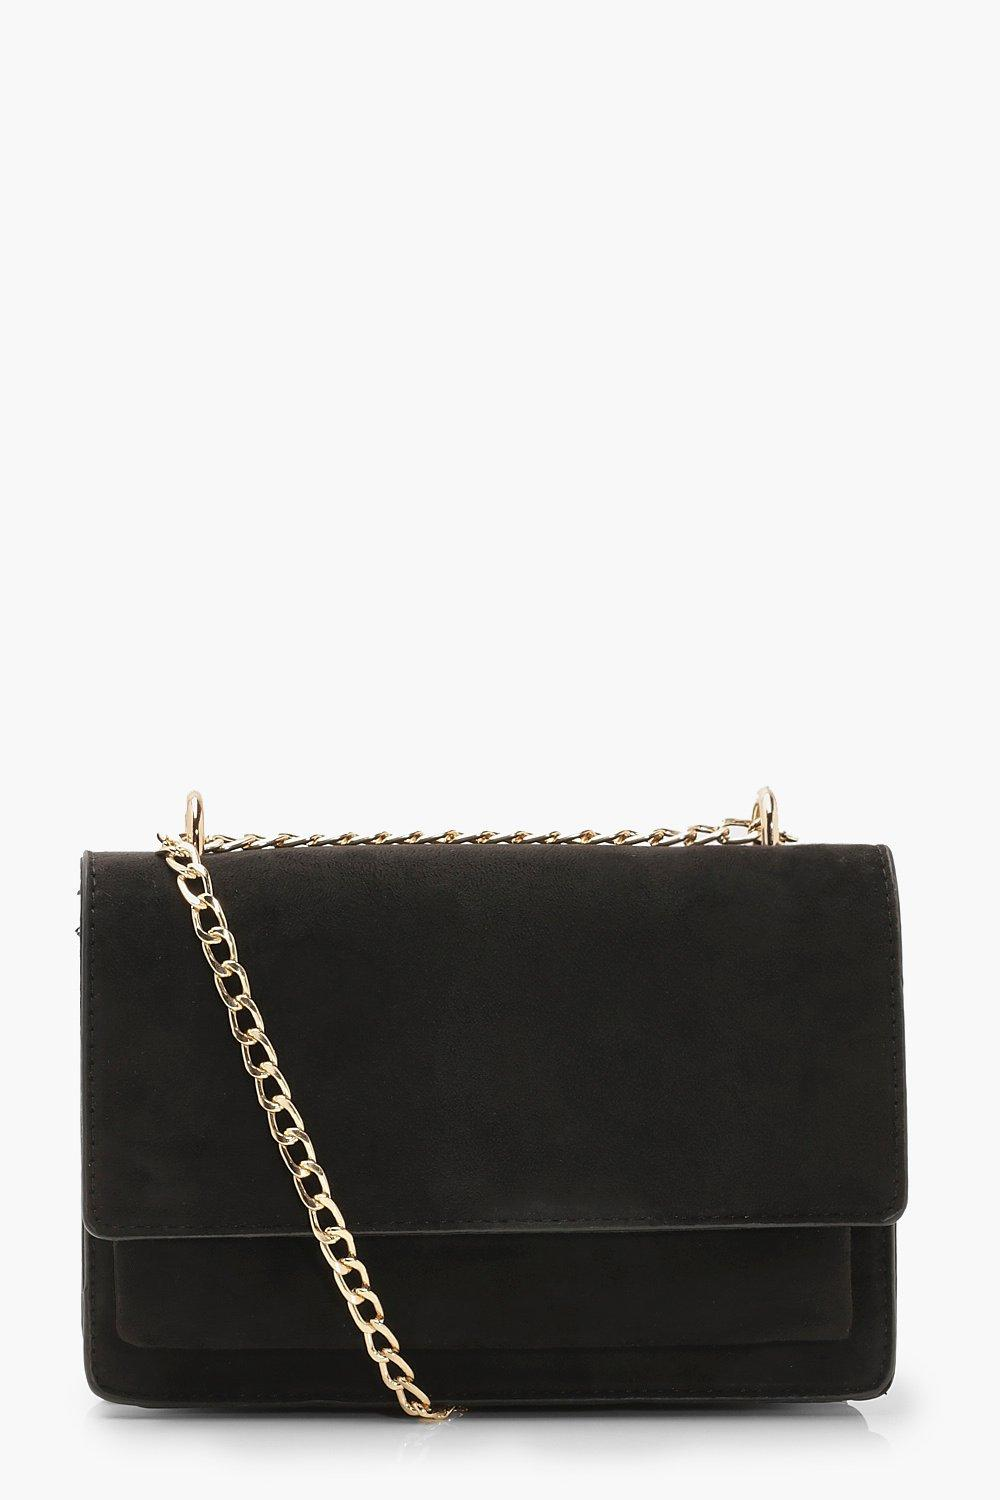 boohoo Womens Suedette Structured Cross Body Bag & Chain - Black - One Size, Black